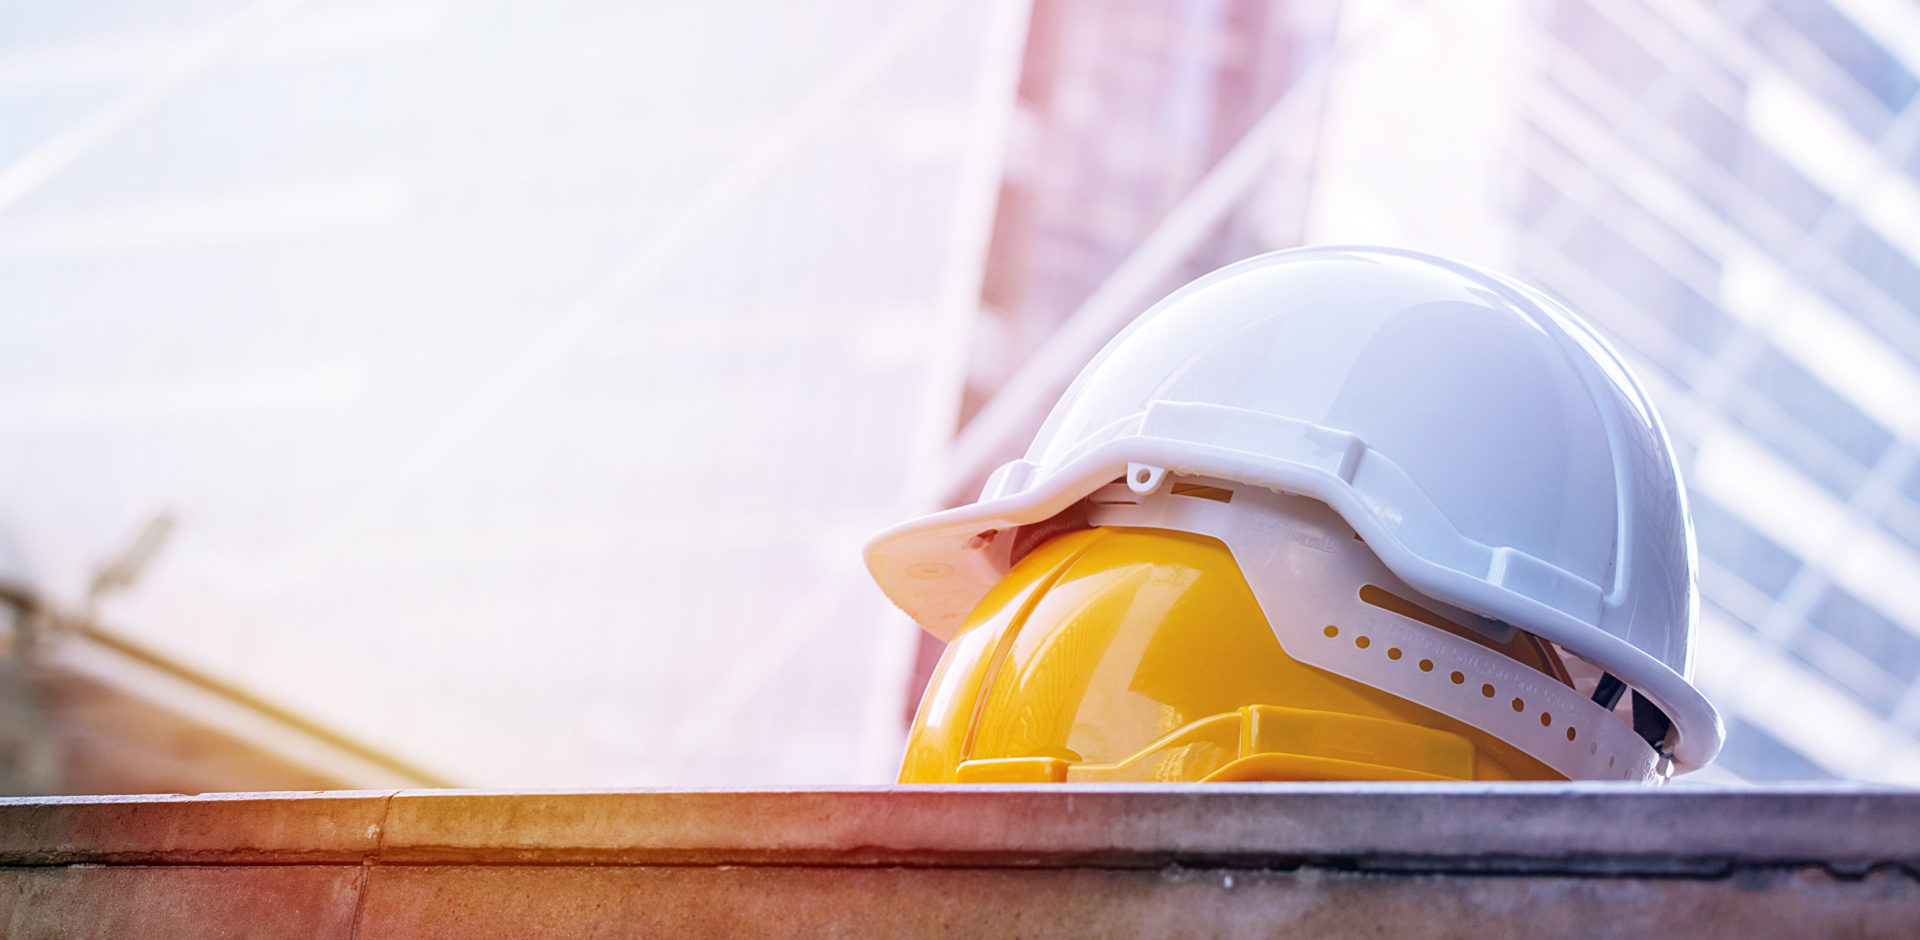 A construction hat representing safety